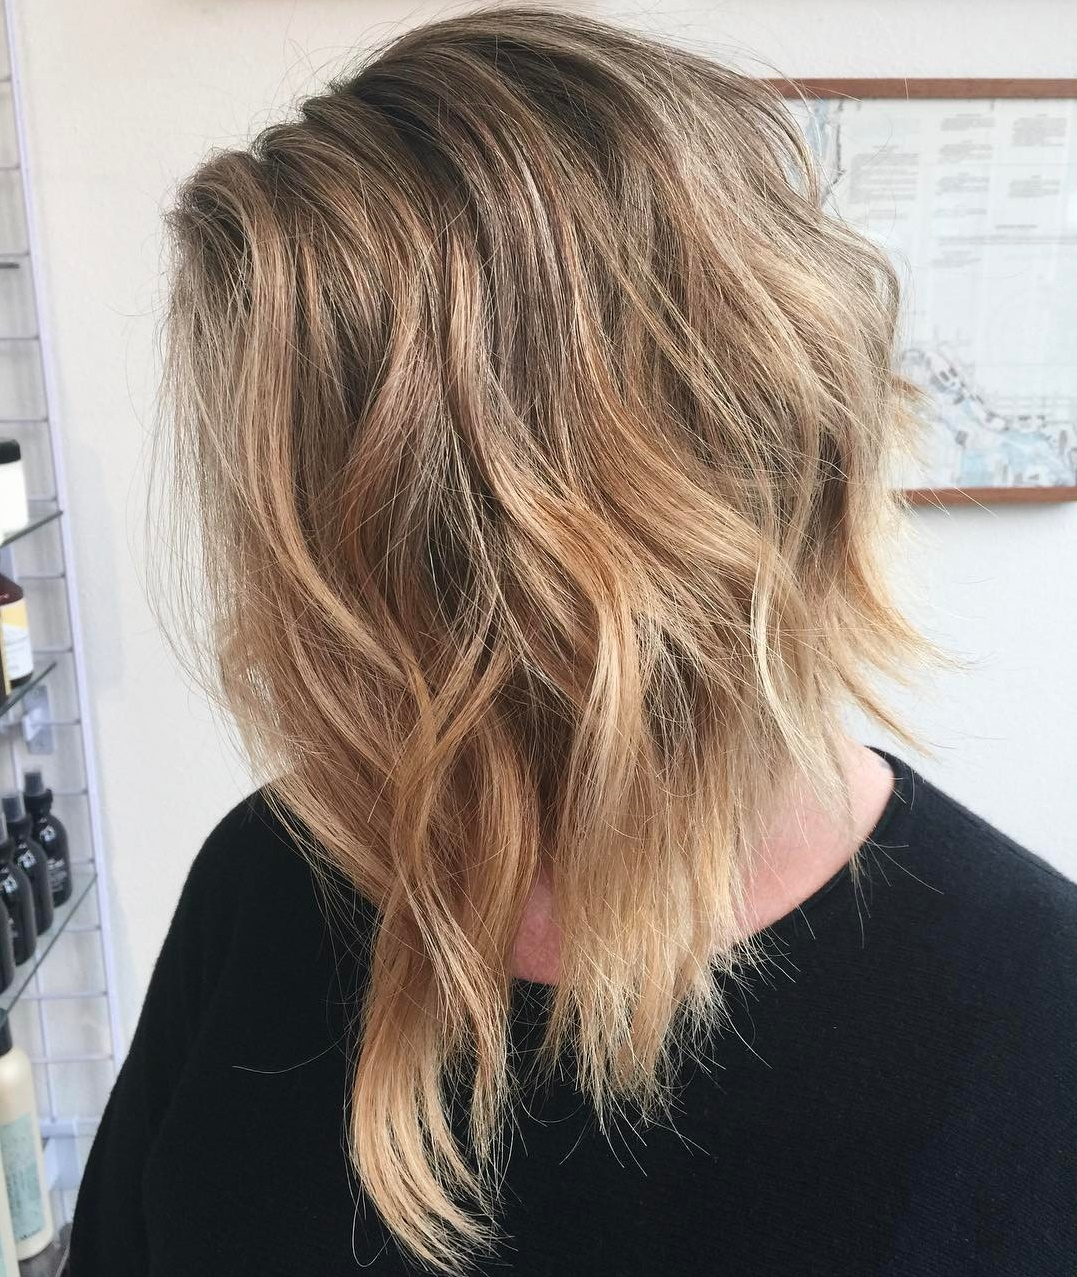 Long Inverted Bob with Shaggy Waves